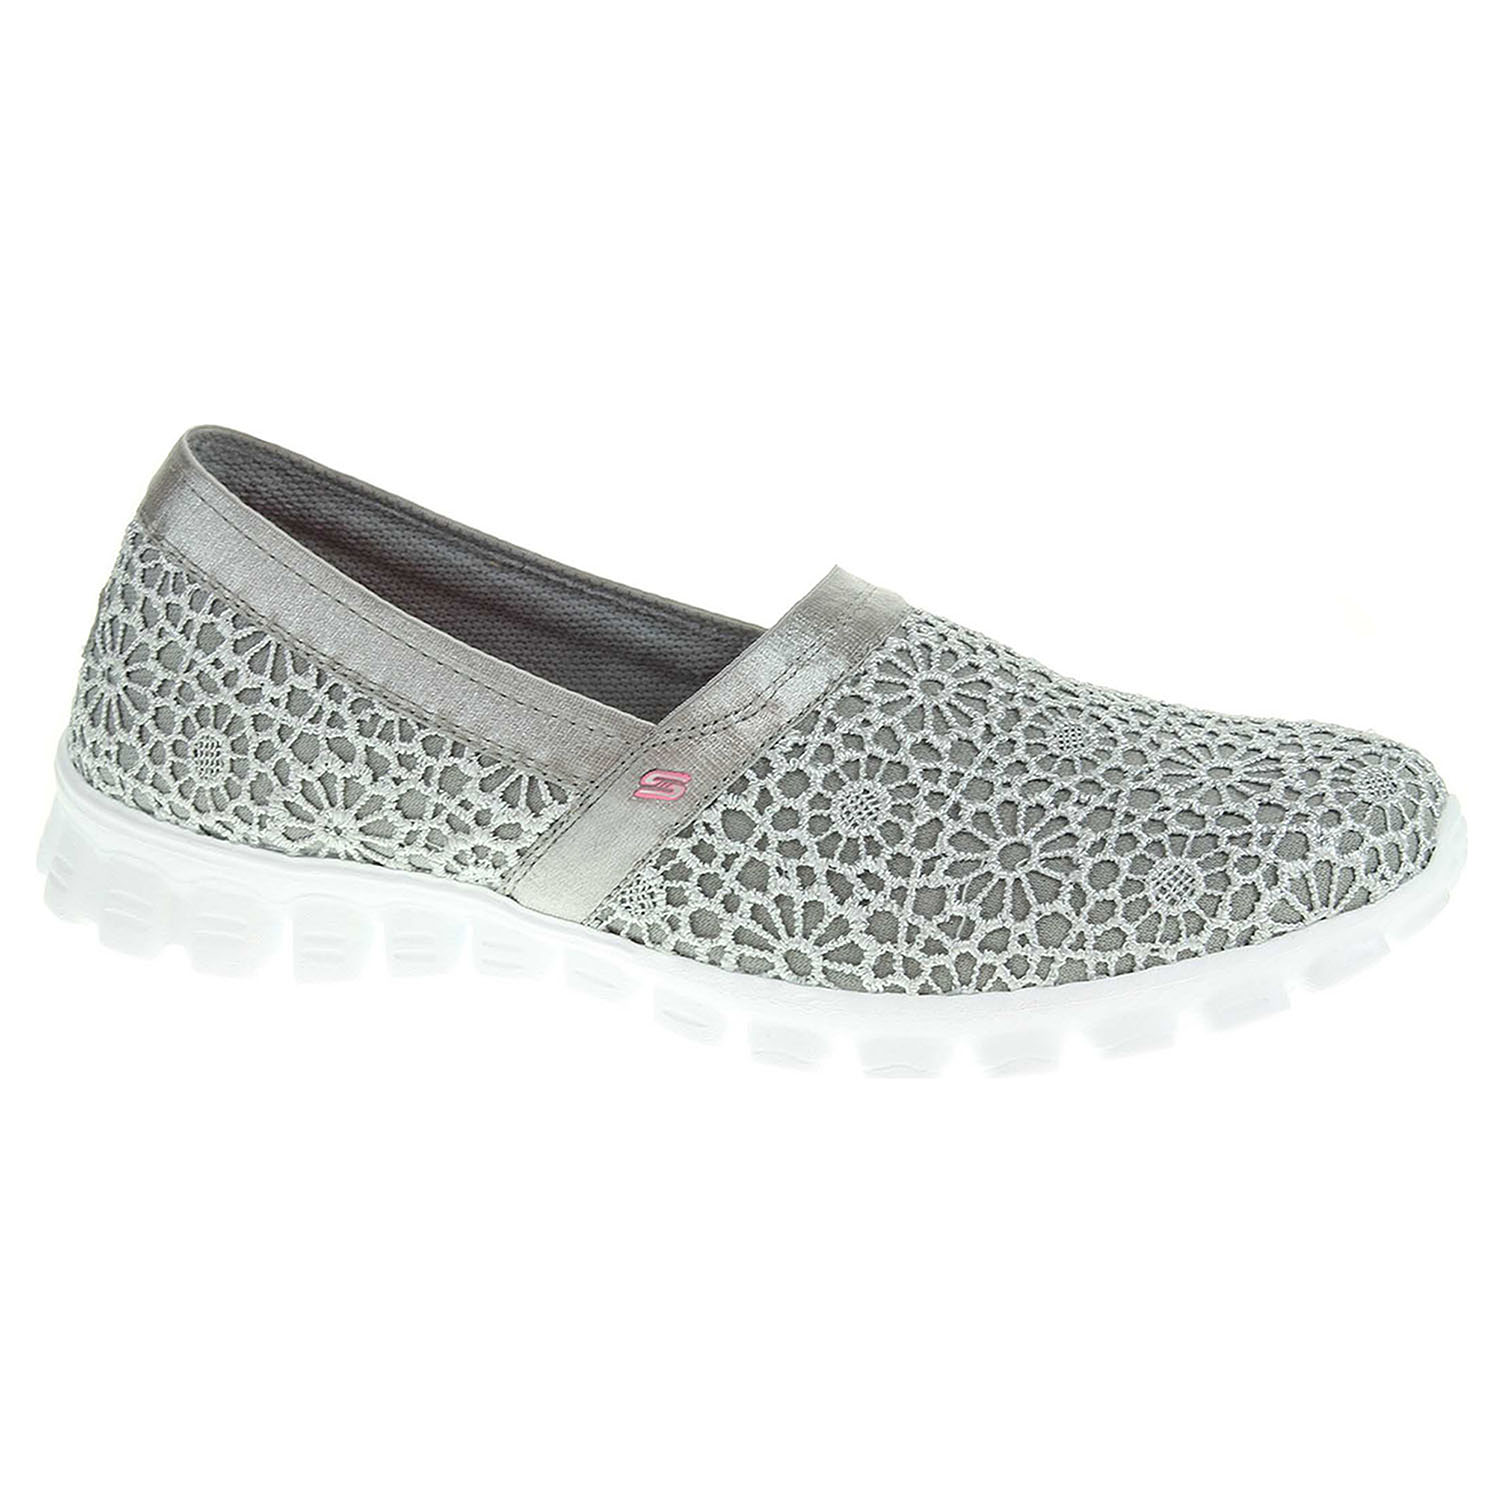 Skechers Ez Flex 2 - Make Believe gray